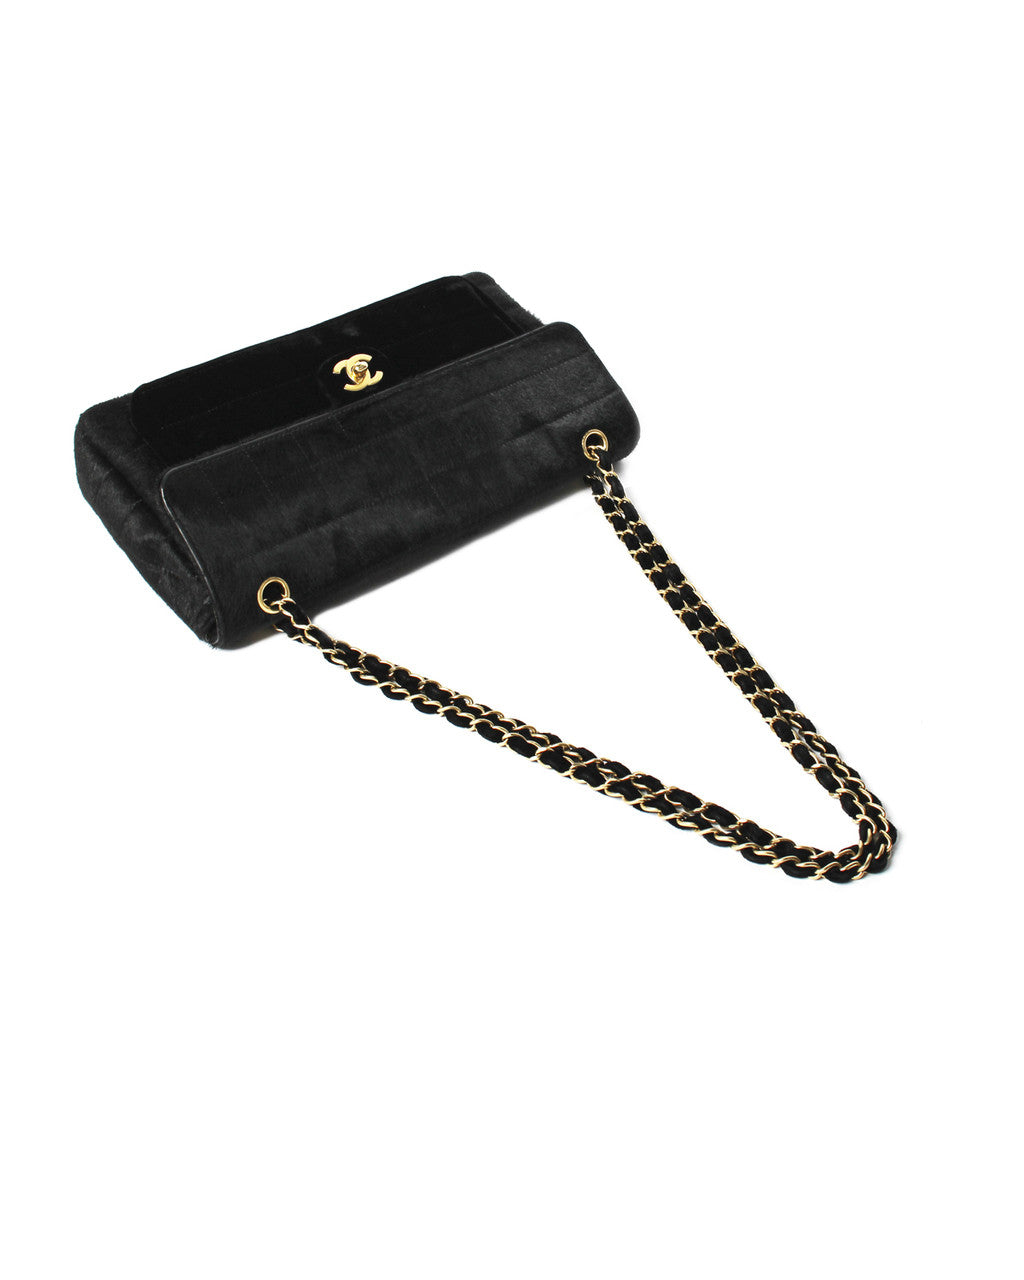 Chanel Black Pony Hair & Velvet Shoulder Bag